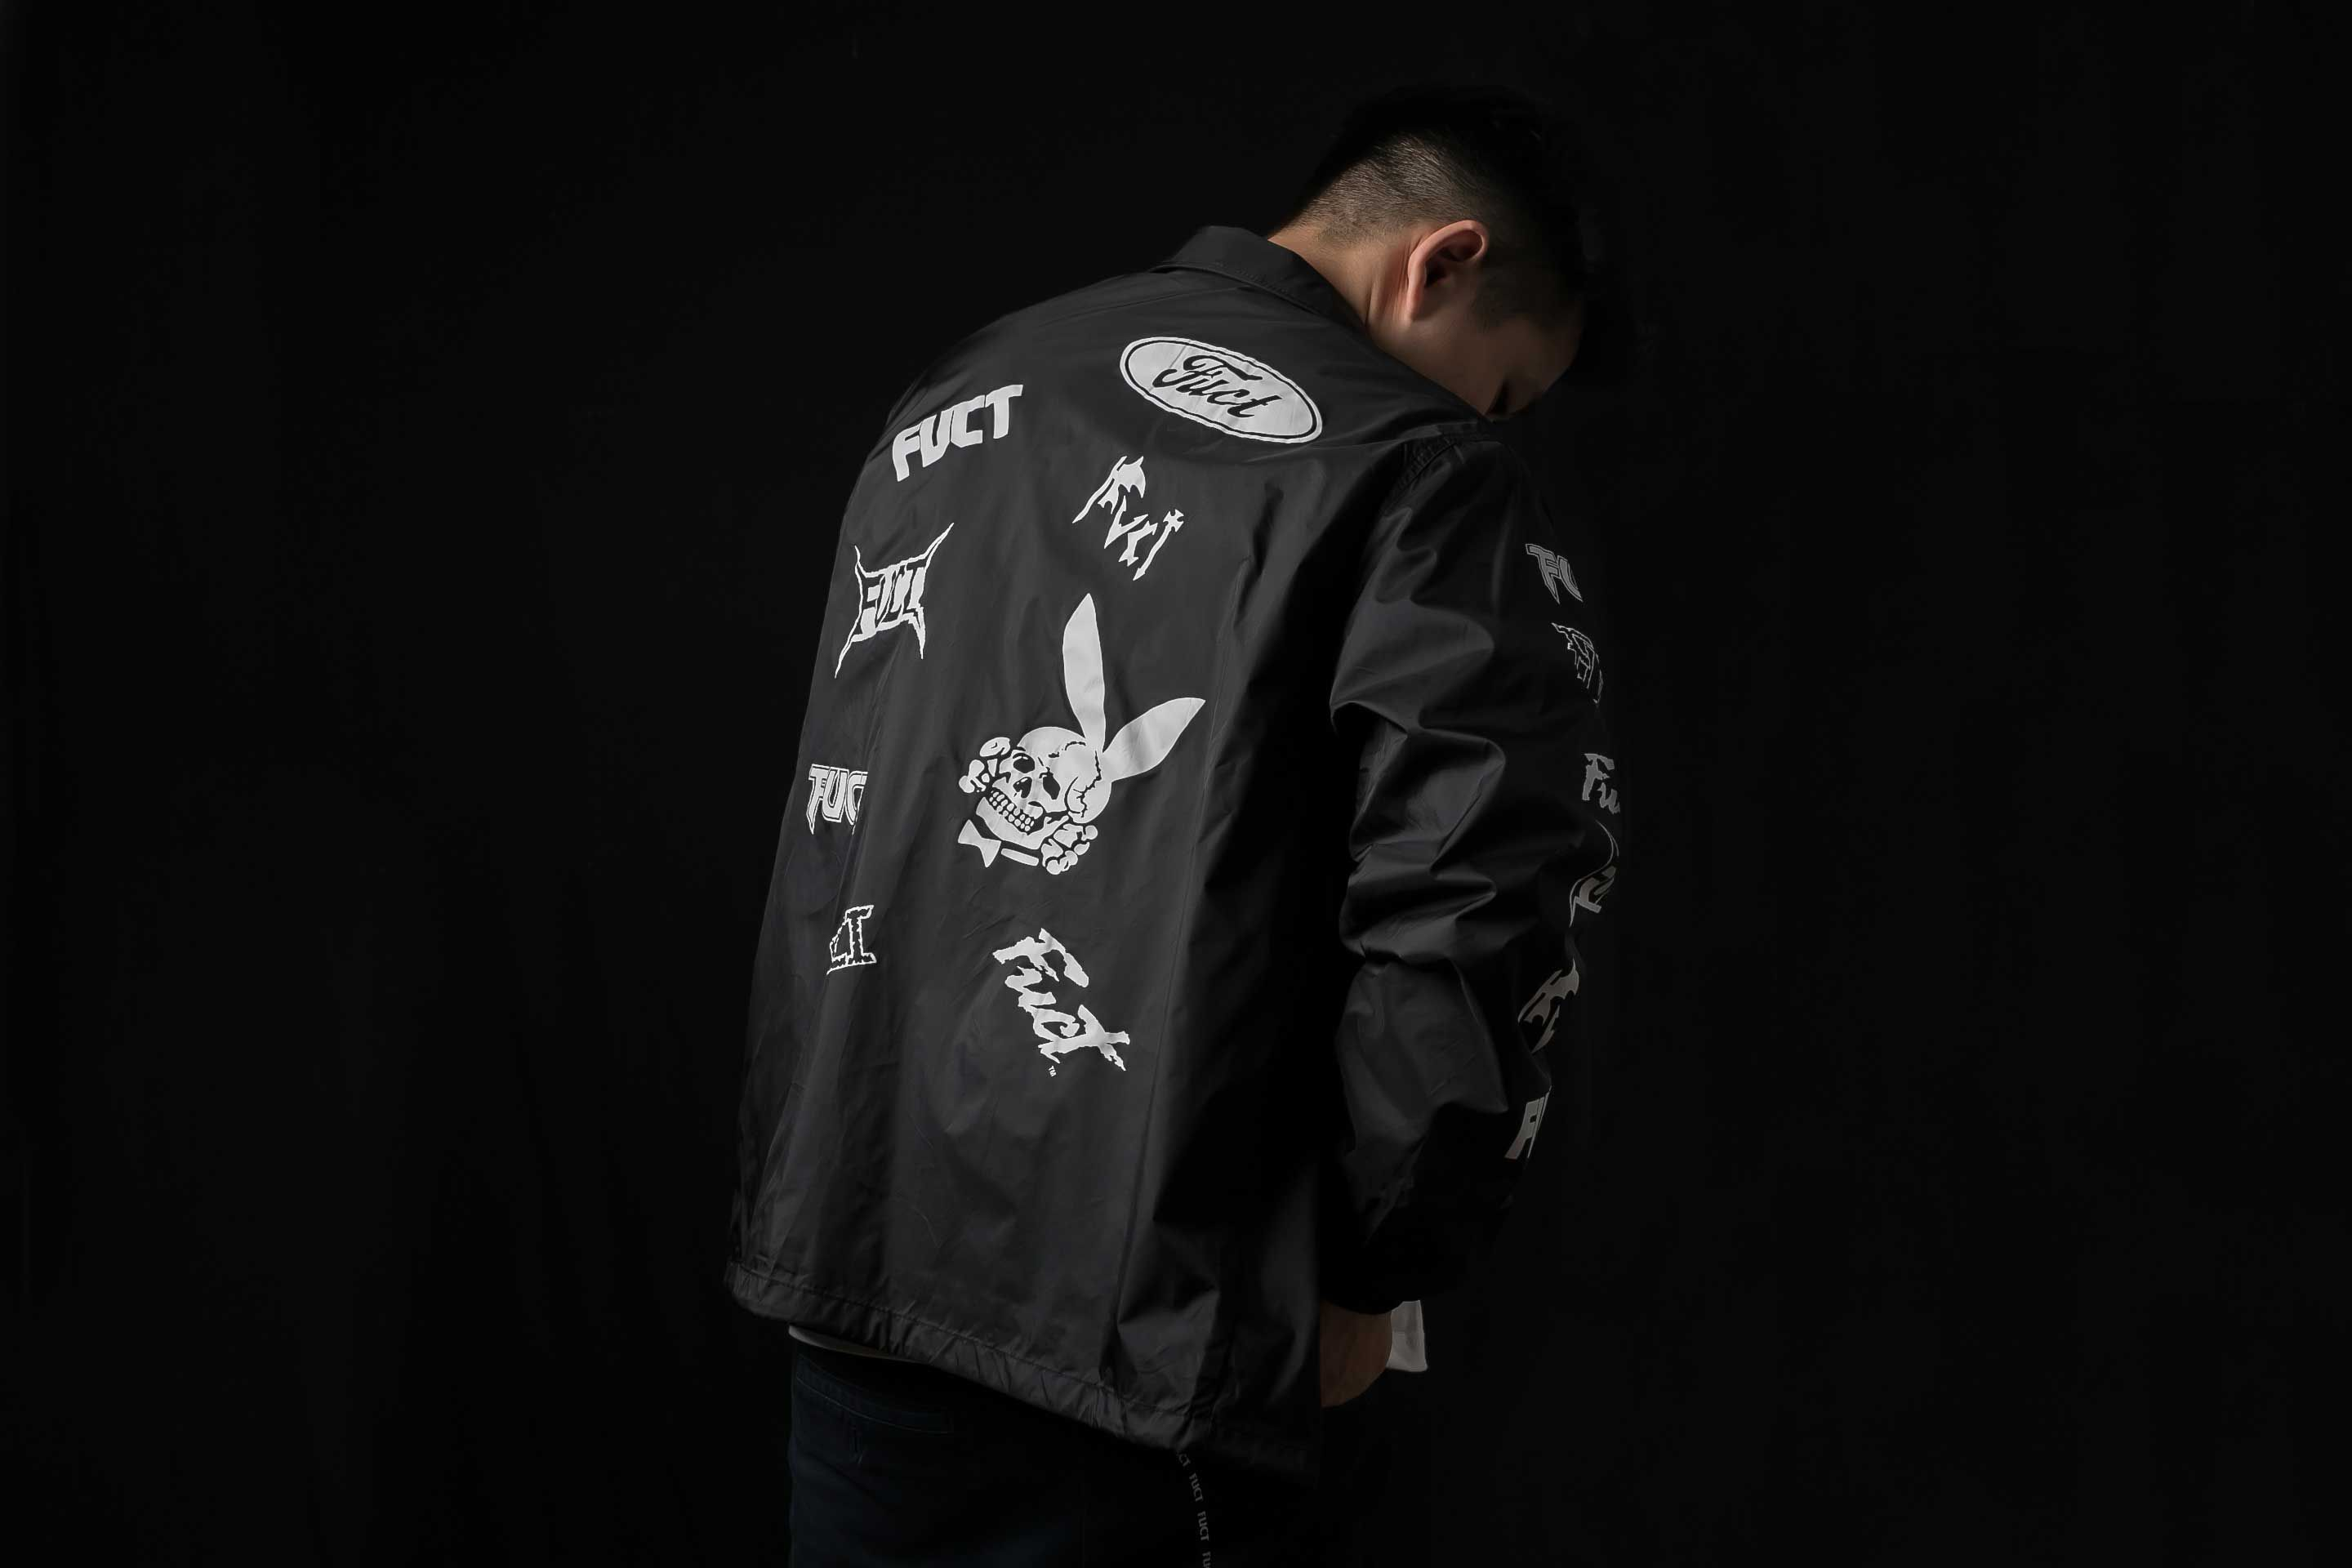 FUCT SSDD SS17' Black Multi Print Coach jacket available in #COVER. #fuct #fuctssdd #CoachJacket #coverbycrossover